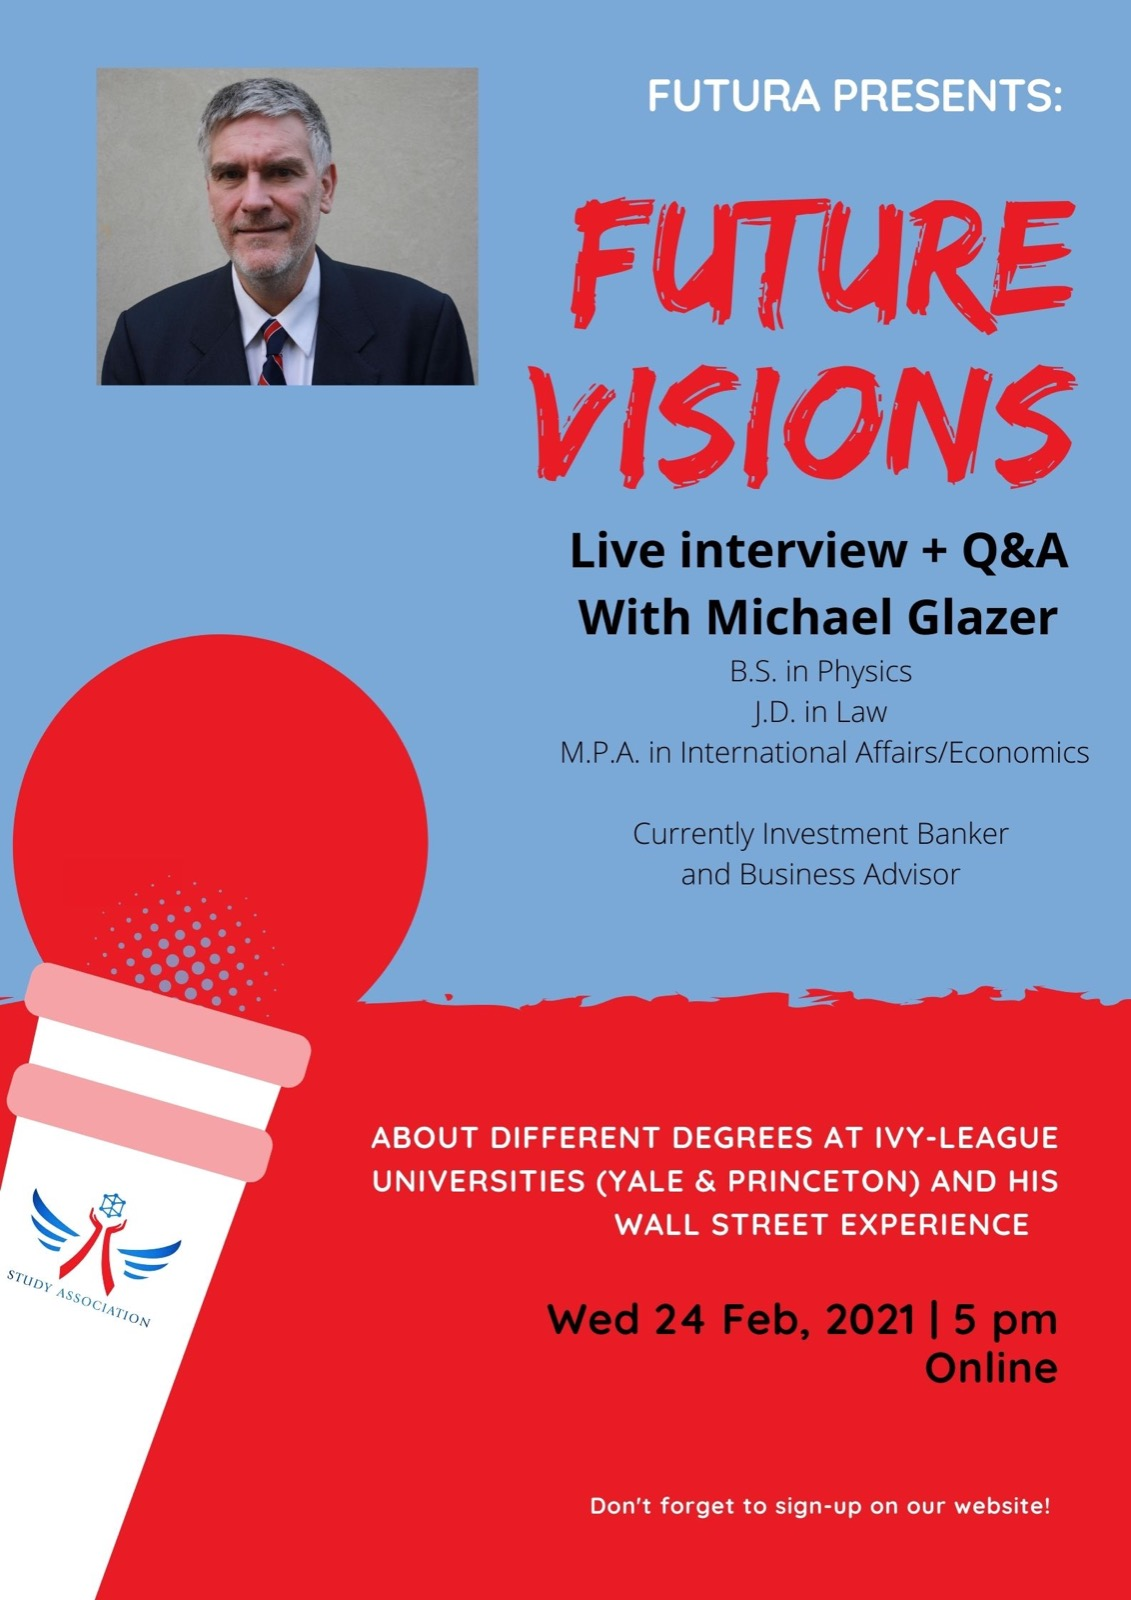 Future Visions with Michael Glazer